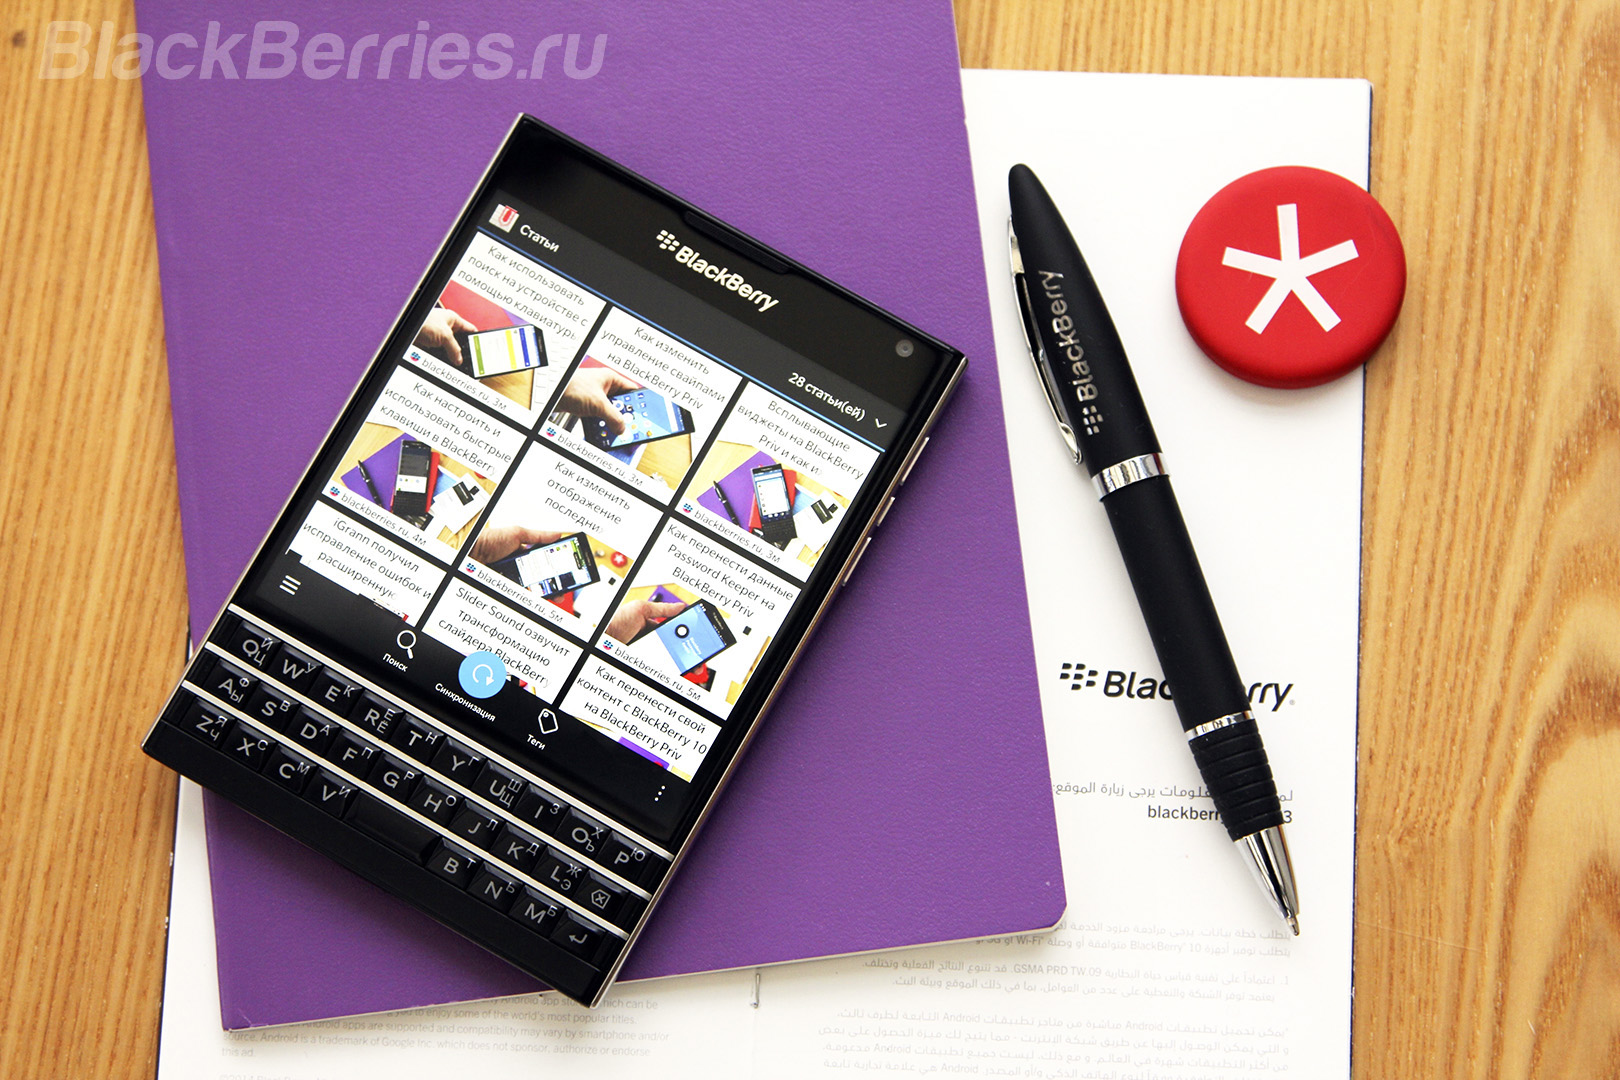 BlackBerry-Apps-21-11-21